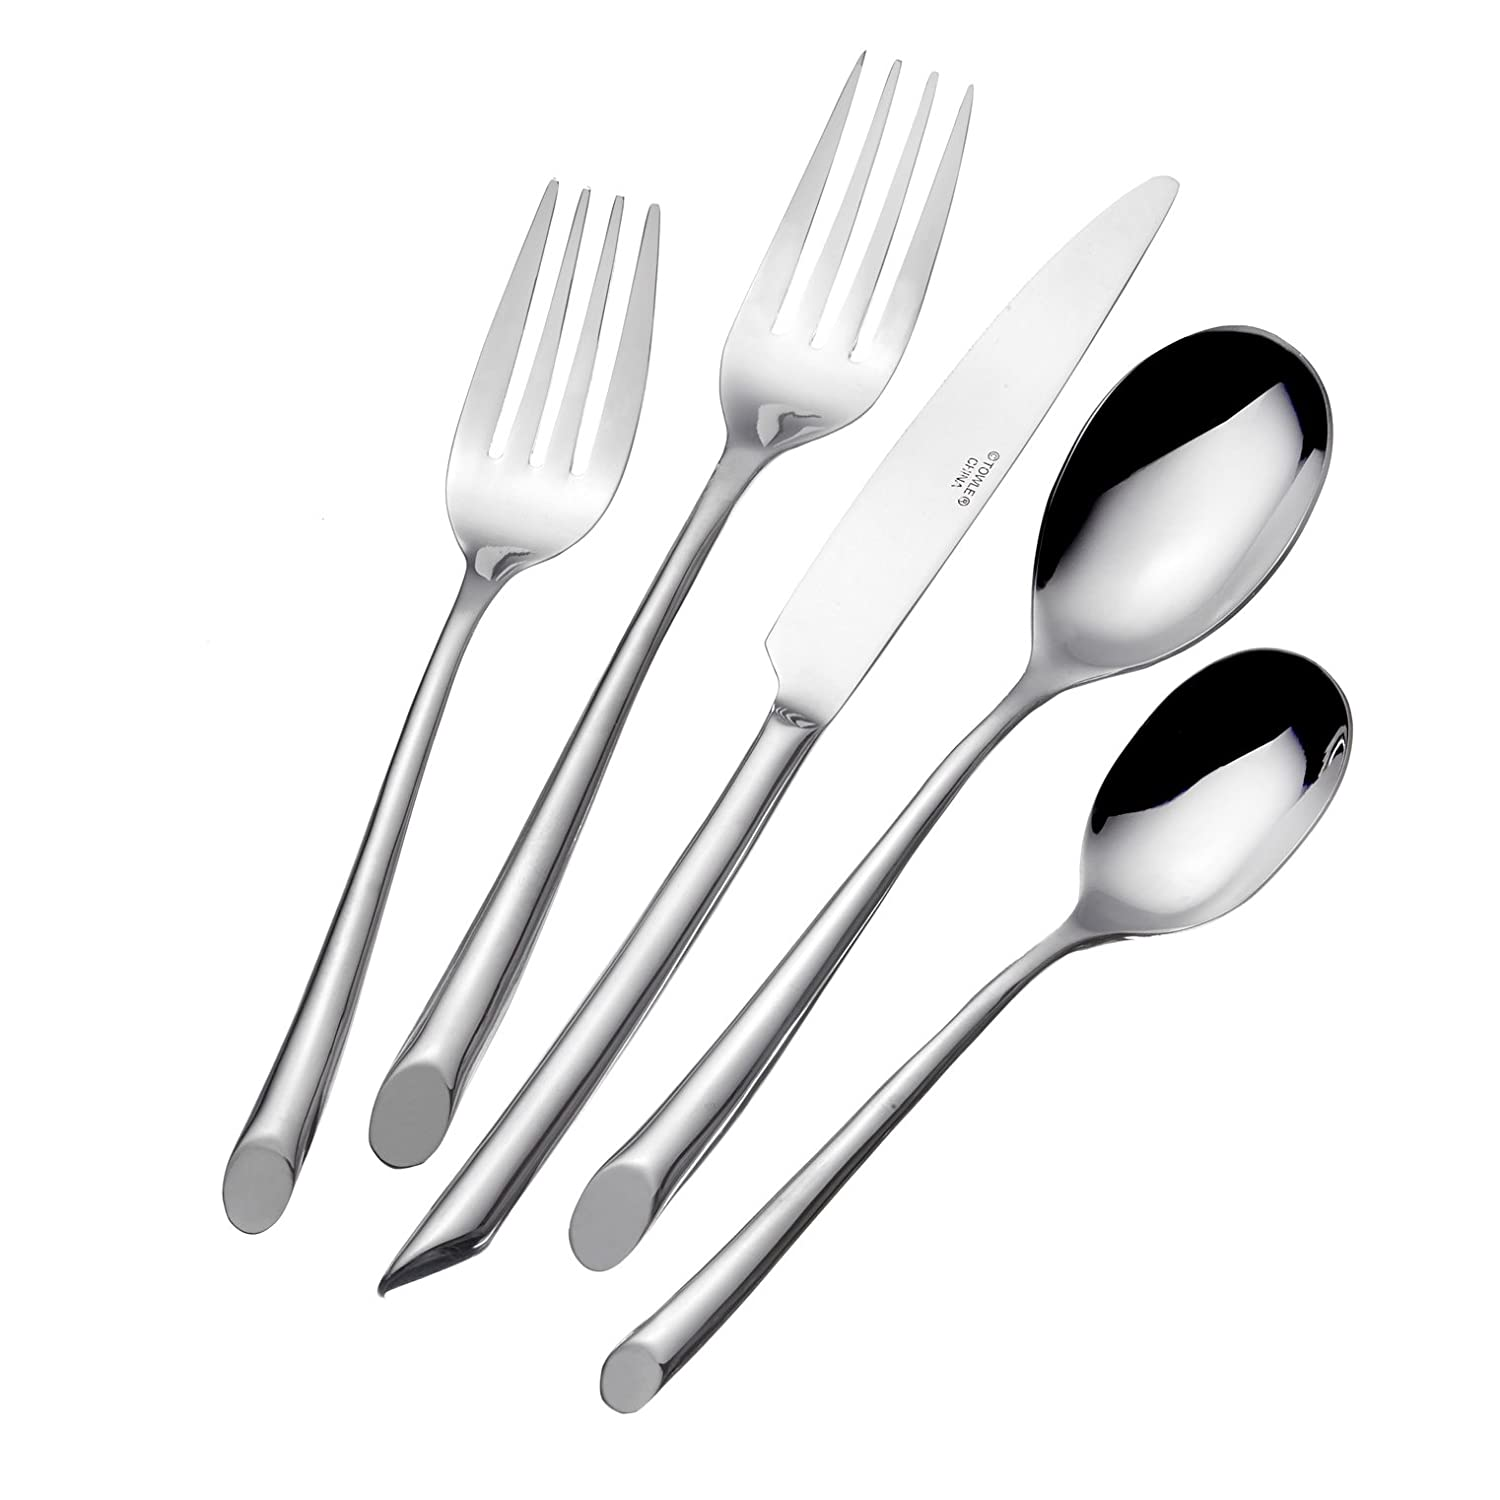 Towle Living 5005925 Wave 42-Piece Forged Stainless Steel Flatware Set, Service for 8